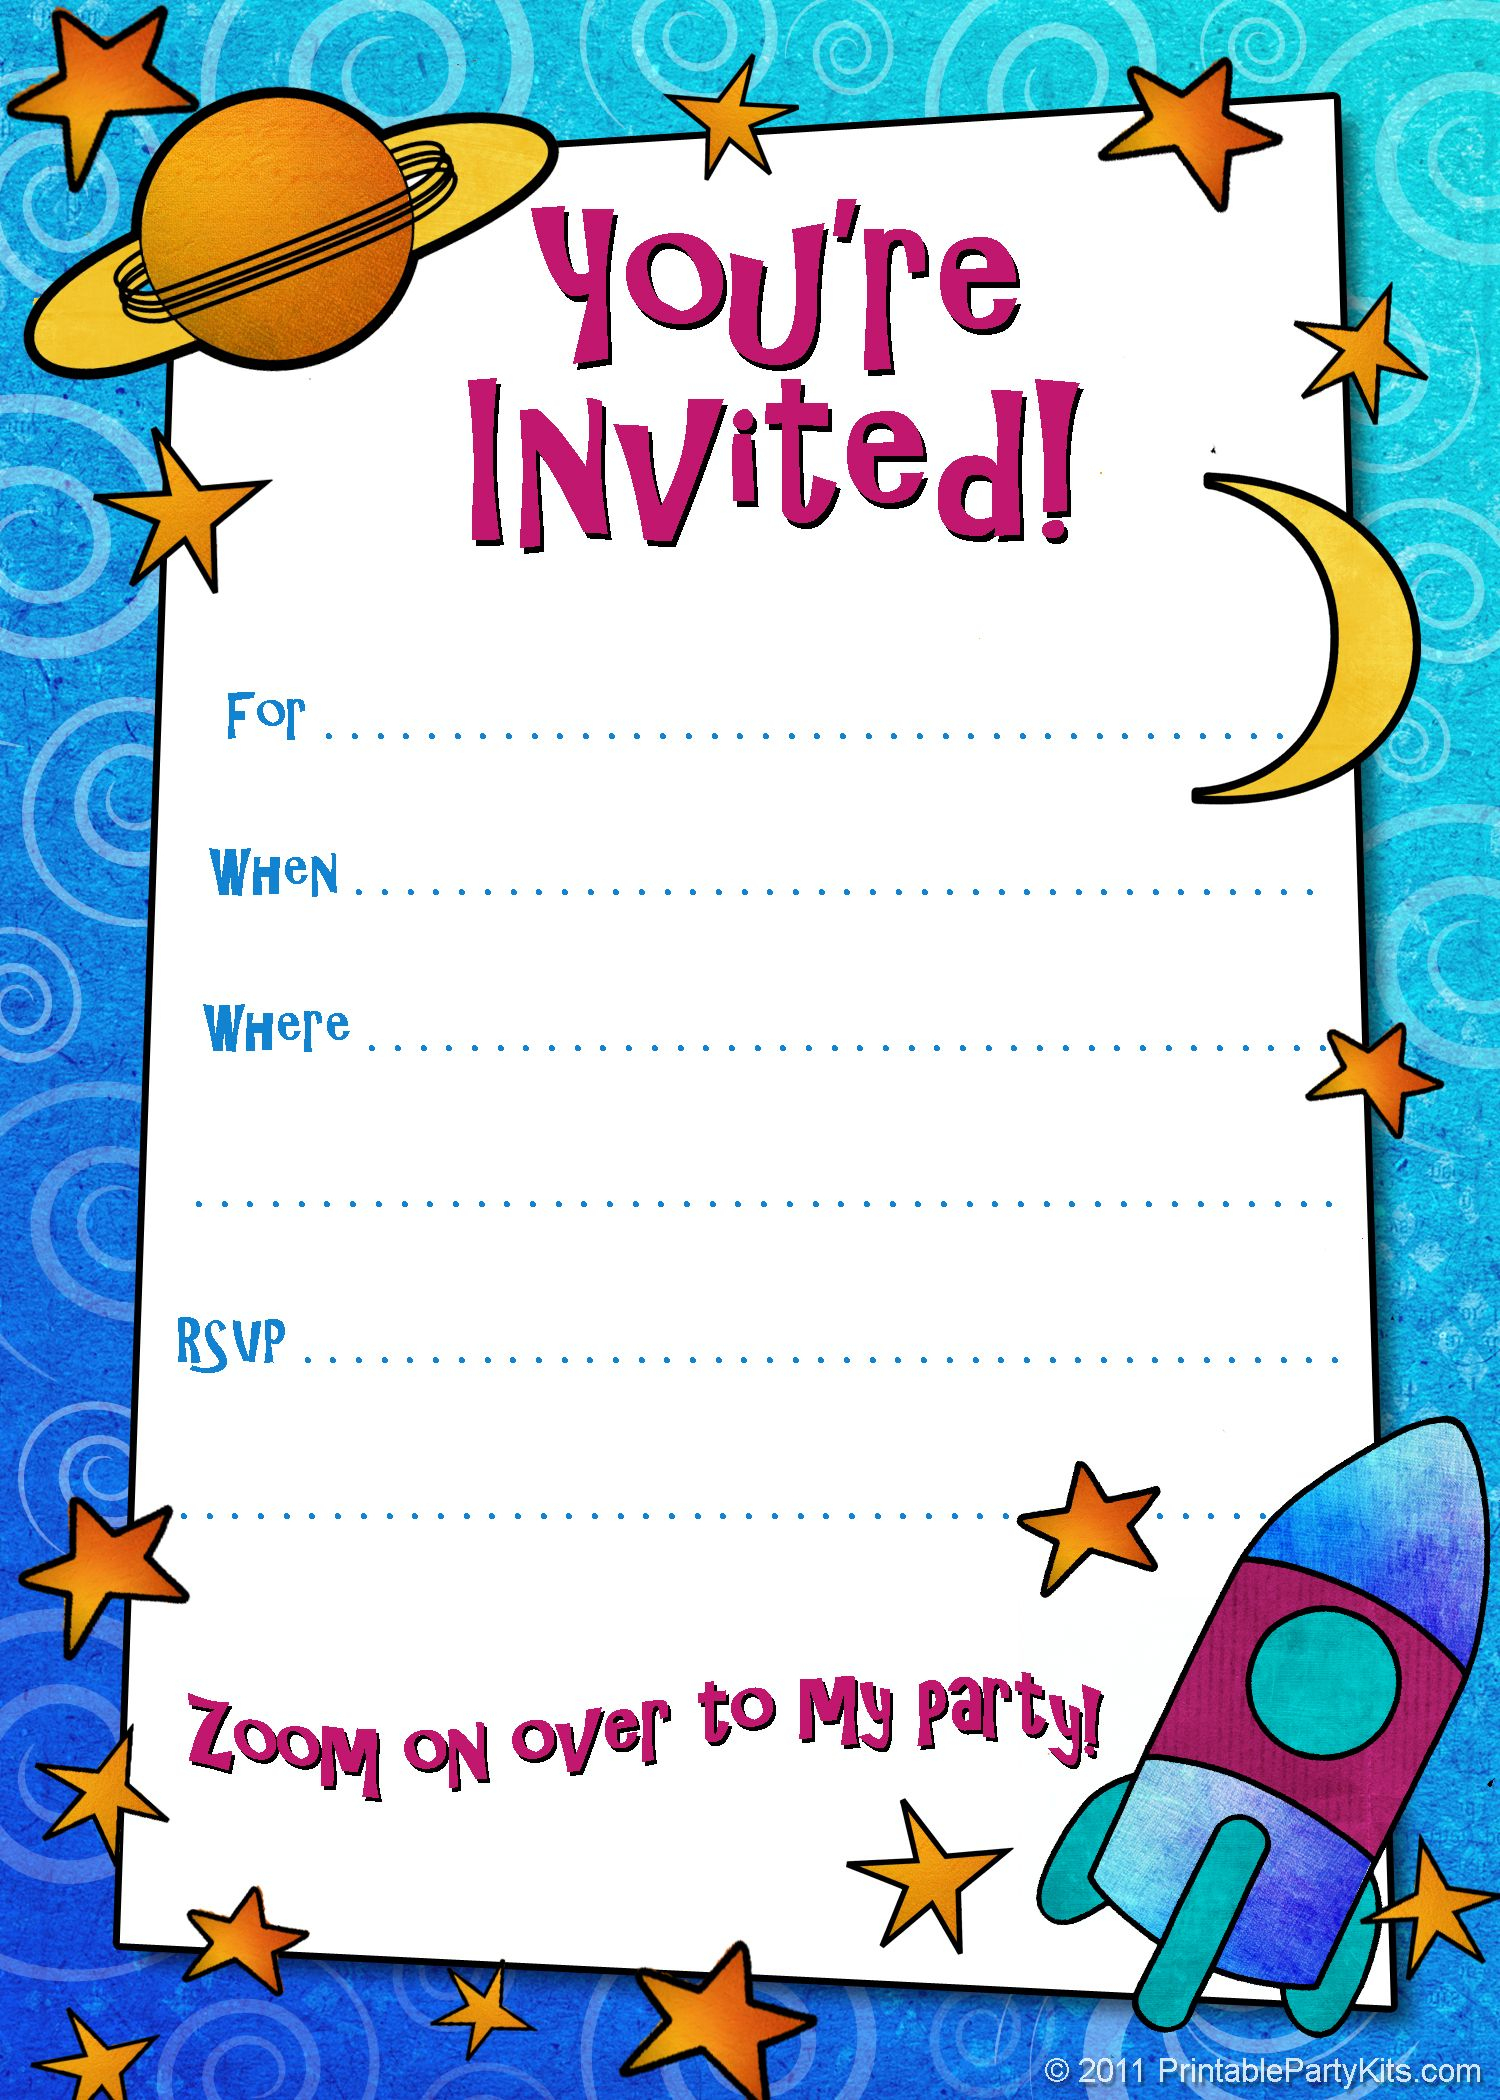 Free Printable Boys Birthday Party Invitations | Birthday Party - Free Printable Surprise Party Invitations